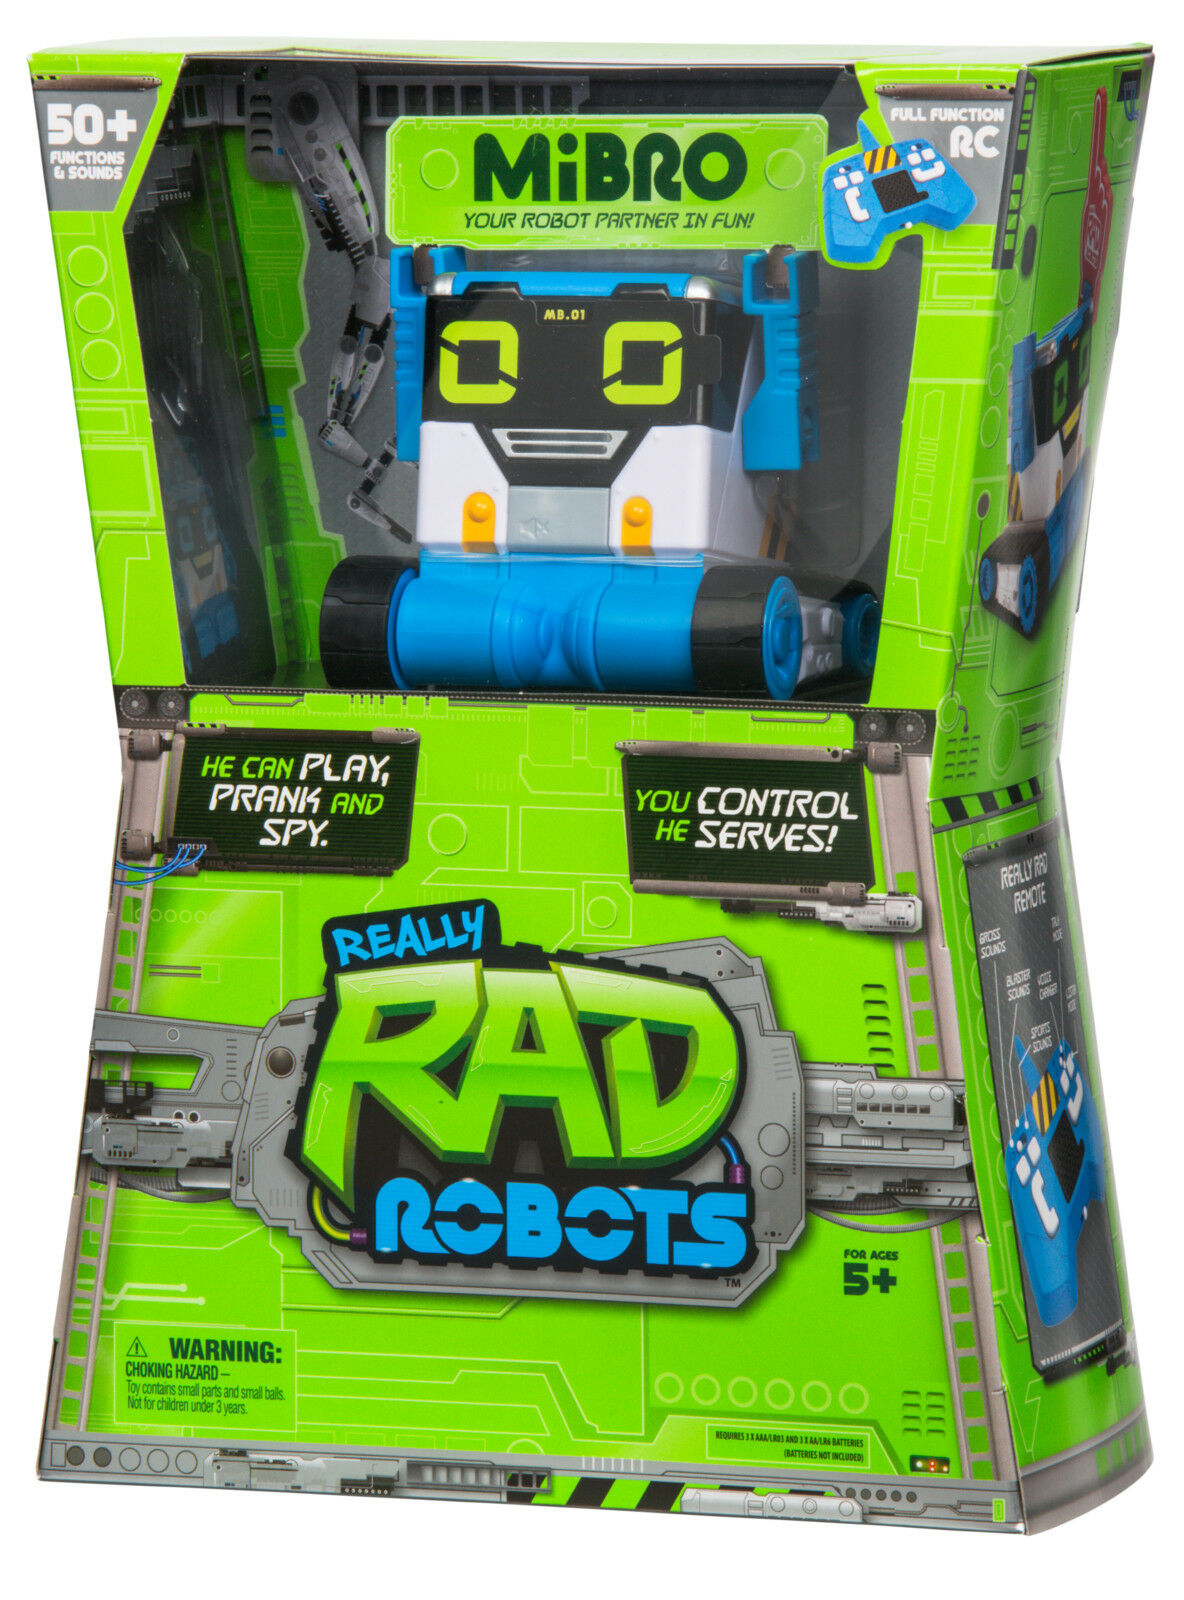 RC Really Rad Robots R/C MiBro Remote Control Robot Christmas Hot List Kids NEW